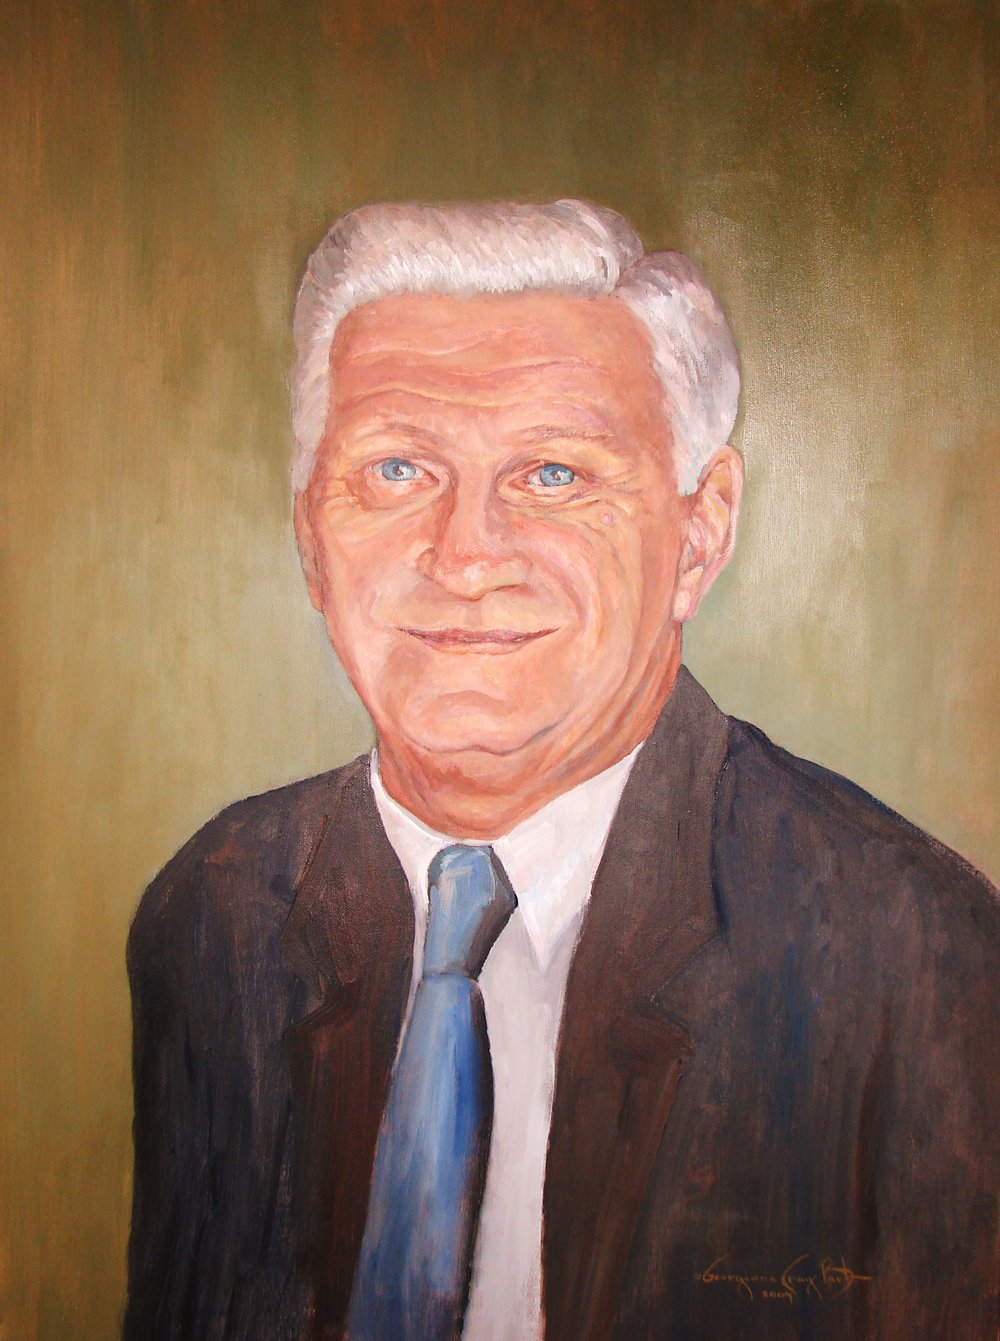 CHRIS'S FATHER-IN-LAW OIL ON CANVAS  18X24.JPG